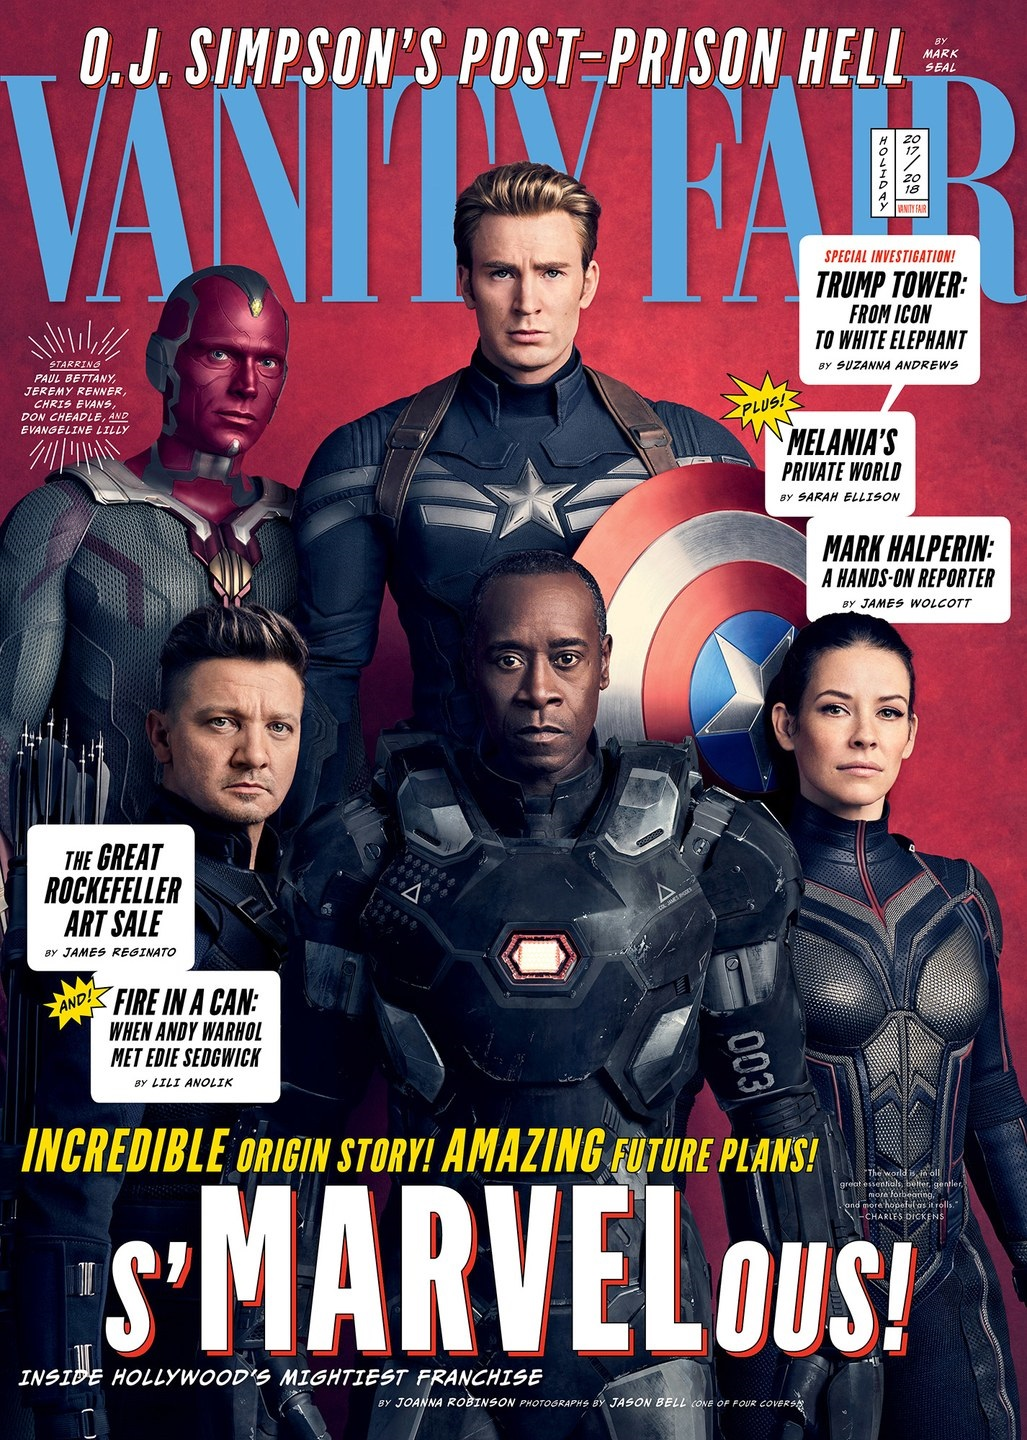 Cover featuring Captain America, Vision, Hawkeye, War Machine and the Wasp